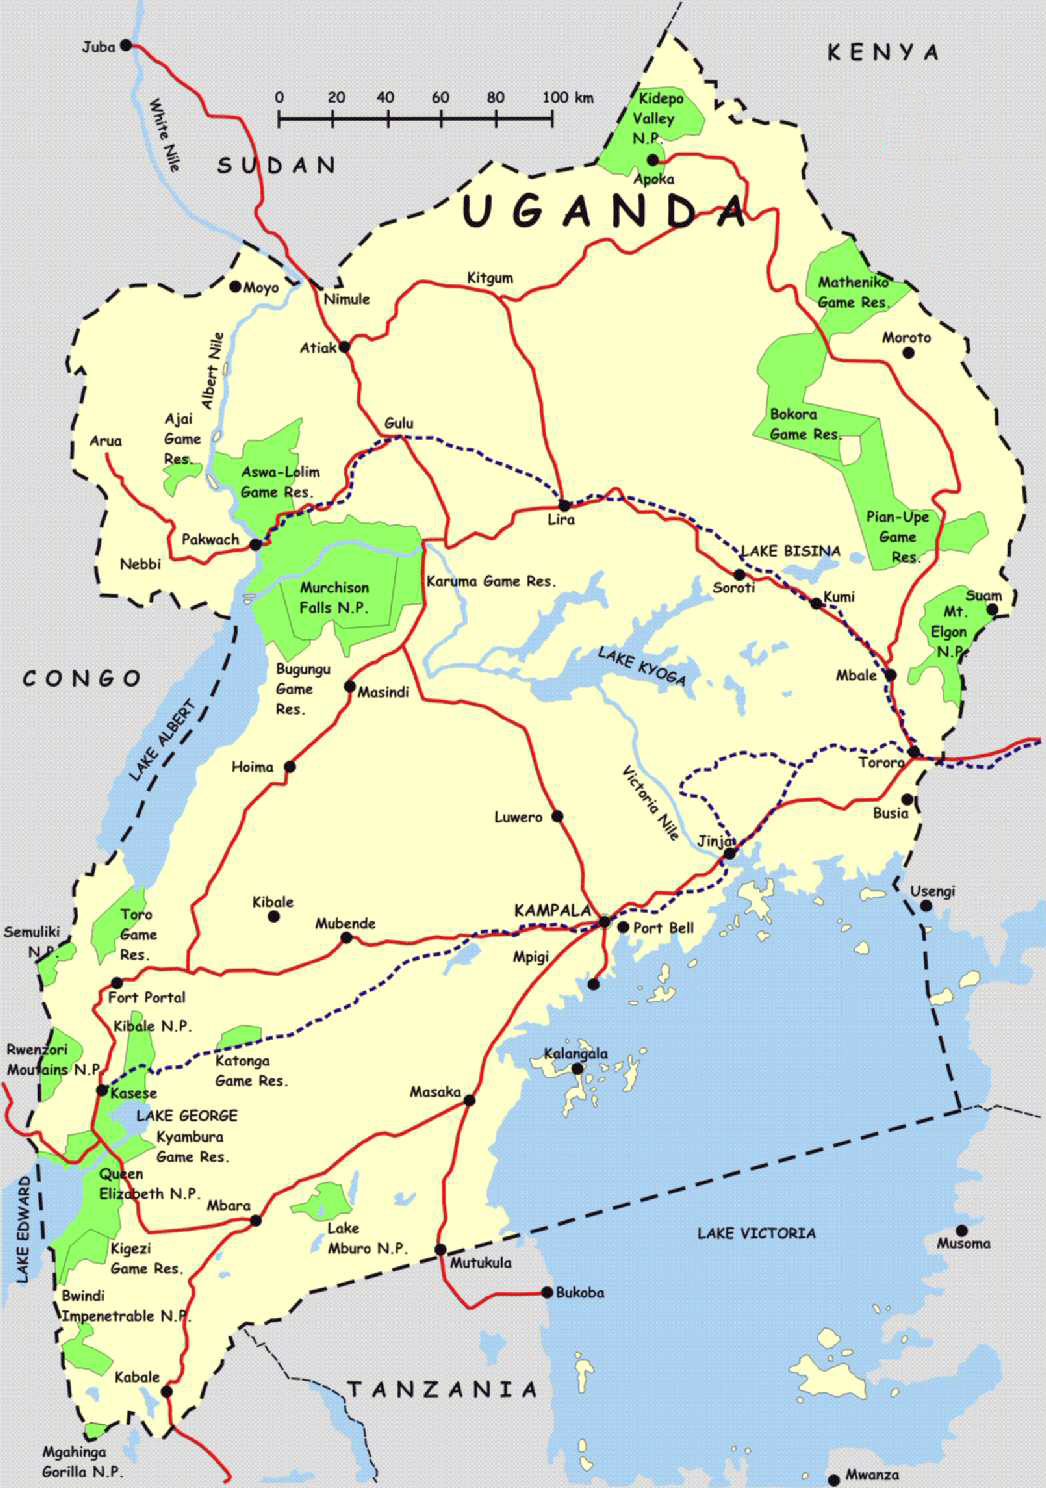 Detailed Highways Map Of Uganda Uganda Detailed Highways Map - Map of uganda